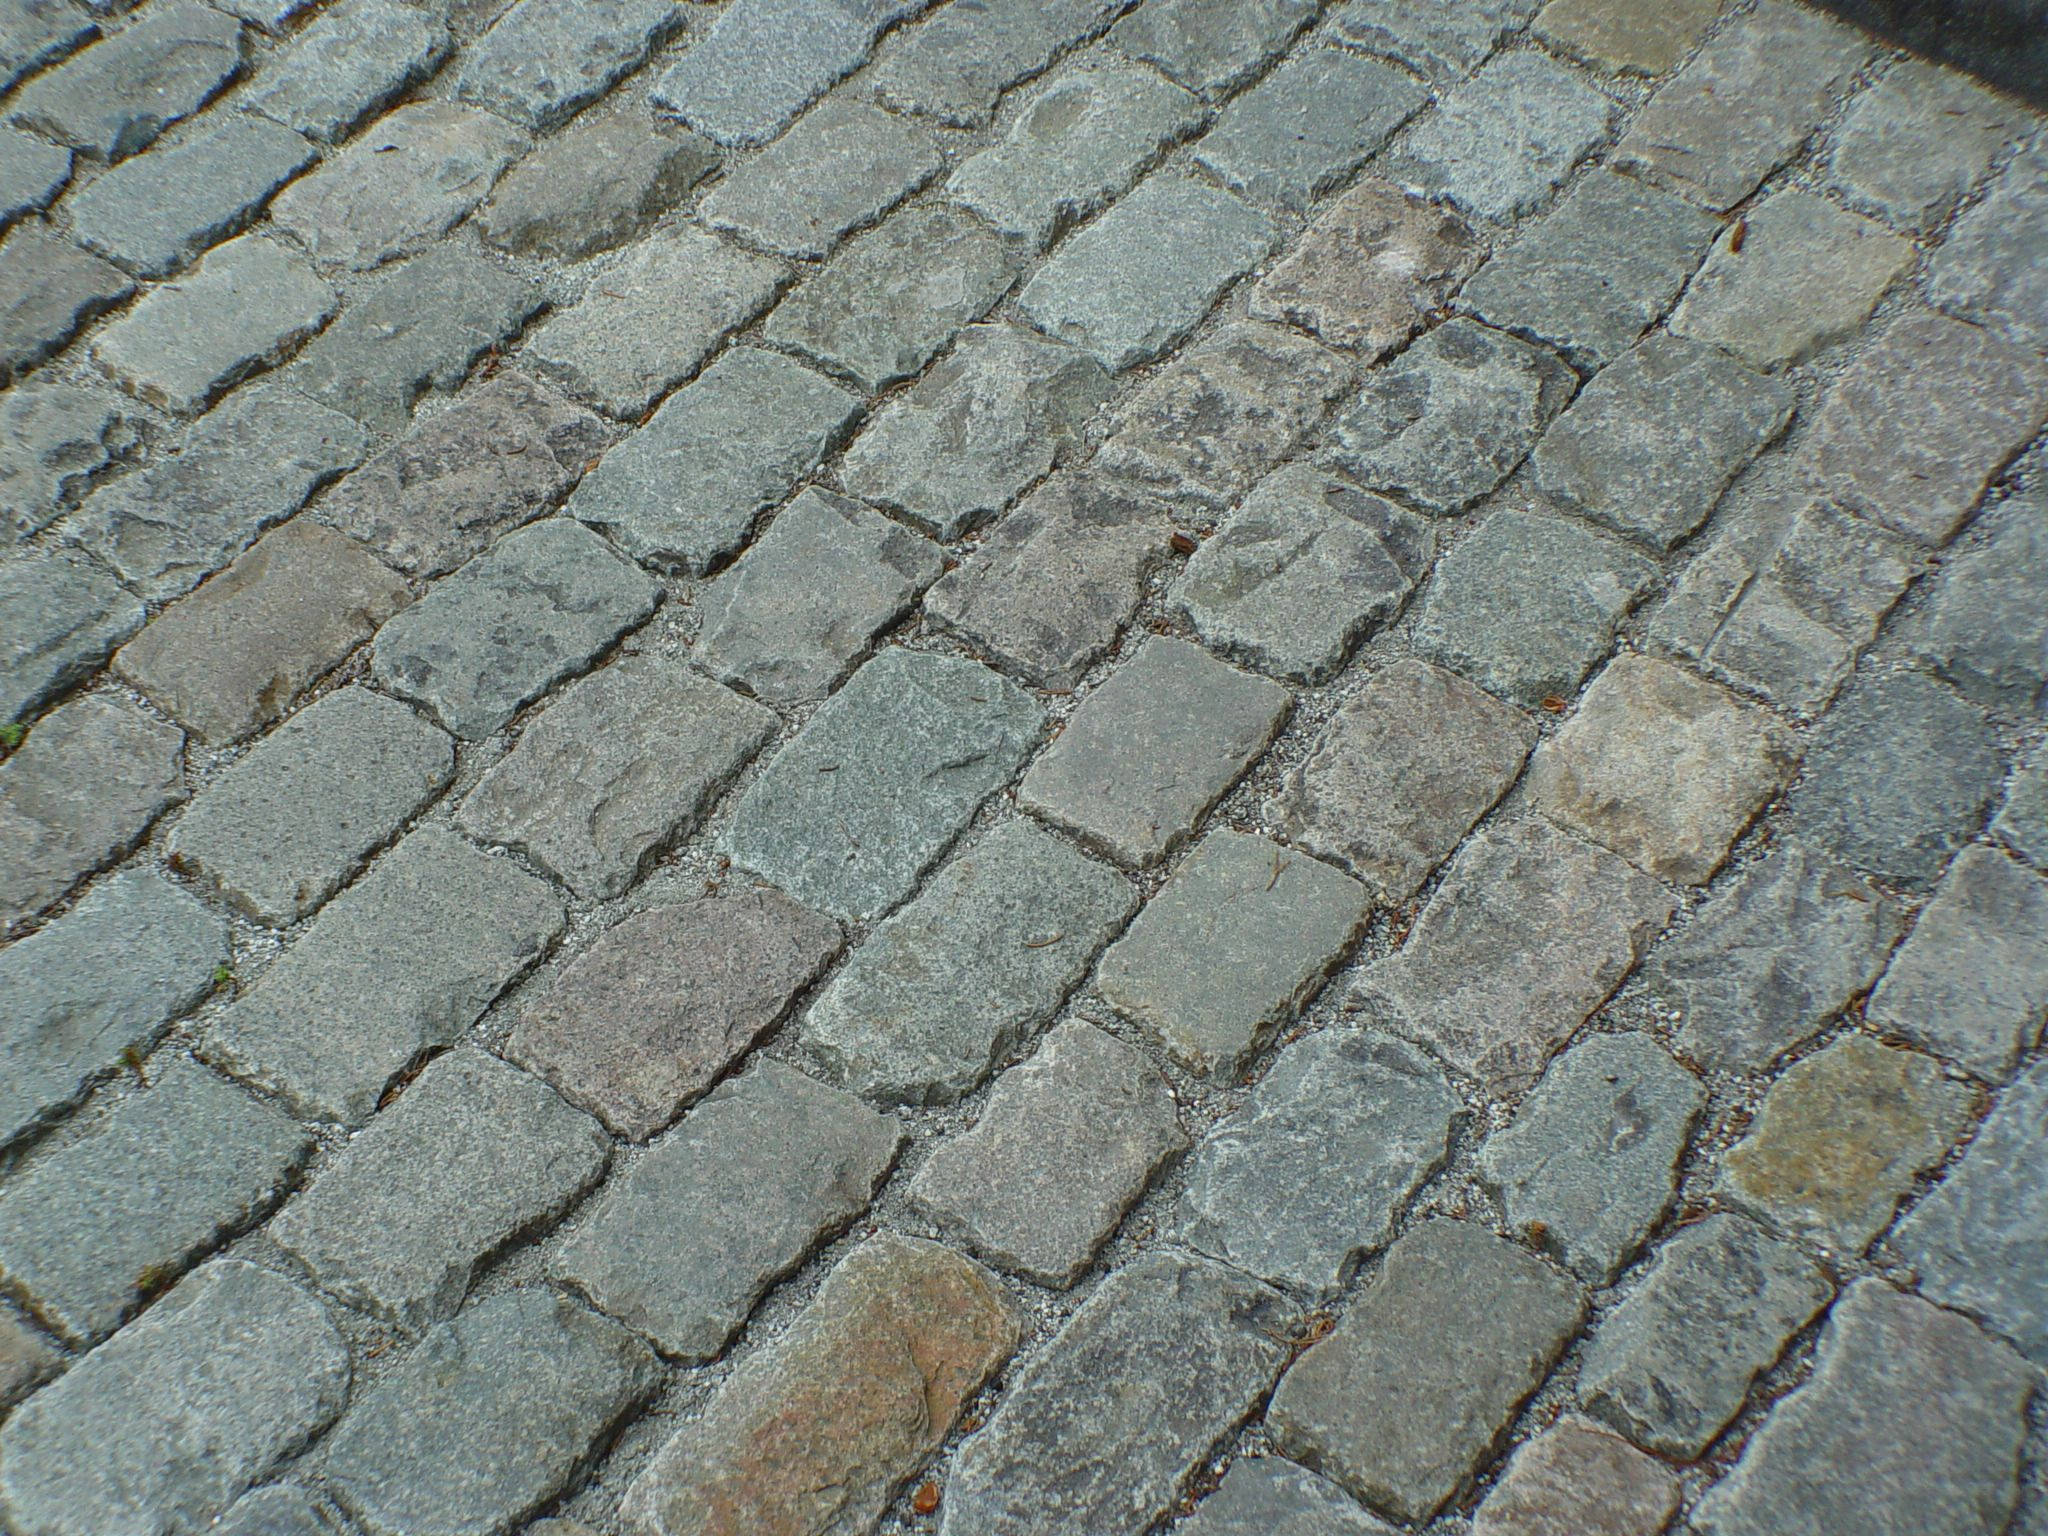 Granite Cobblestone Pavers : Permeable surface using natural stone paving cobblestone